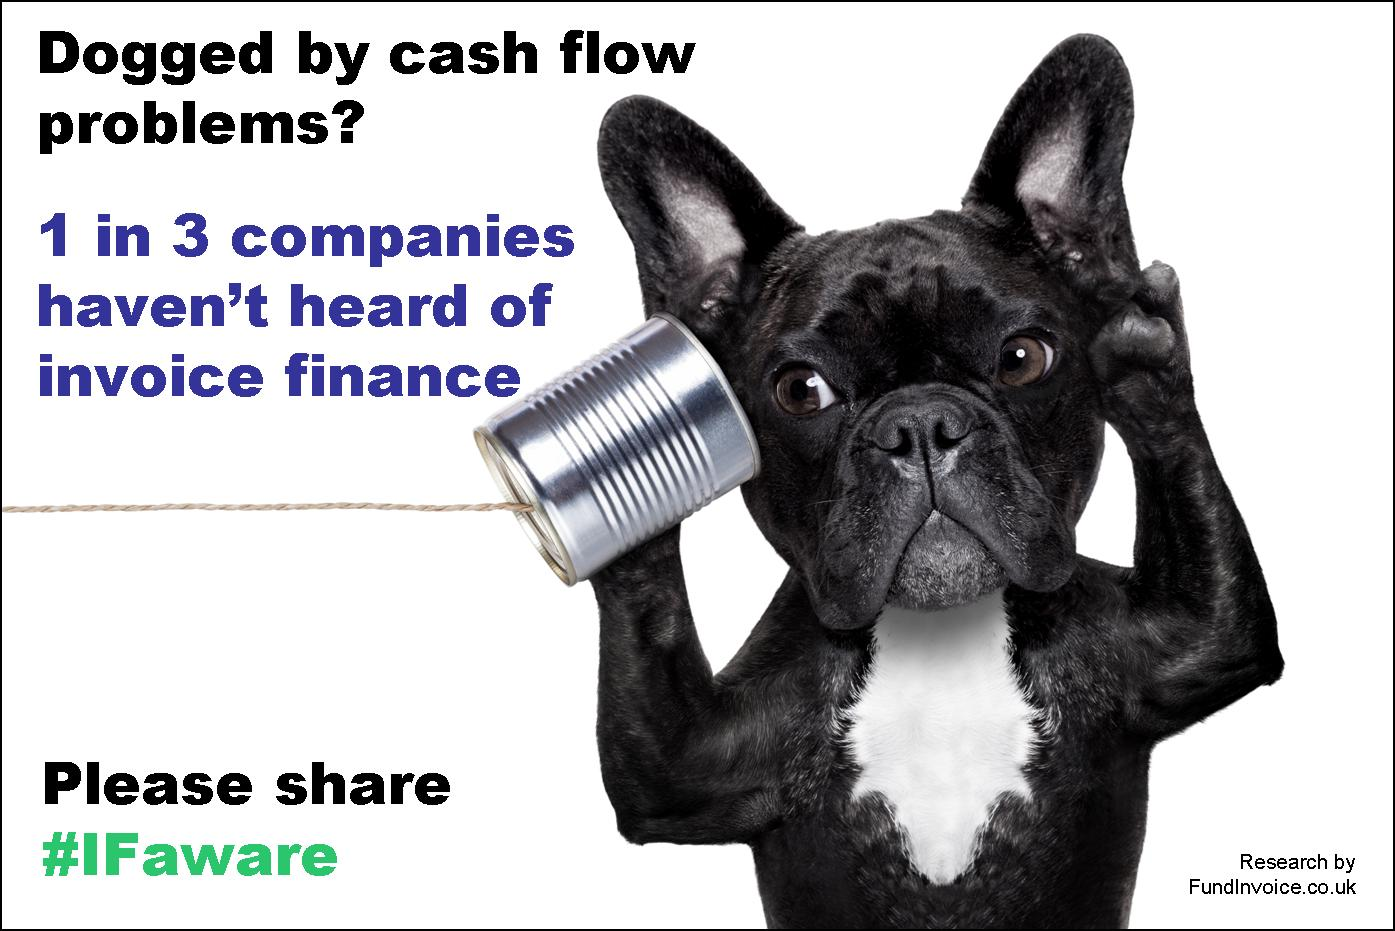 Are you dogged by cash flow problems? Have you heard of invoice finance?